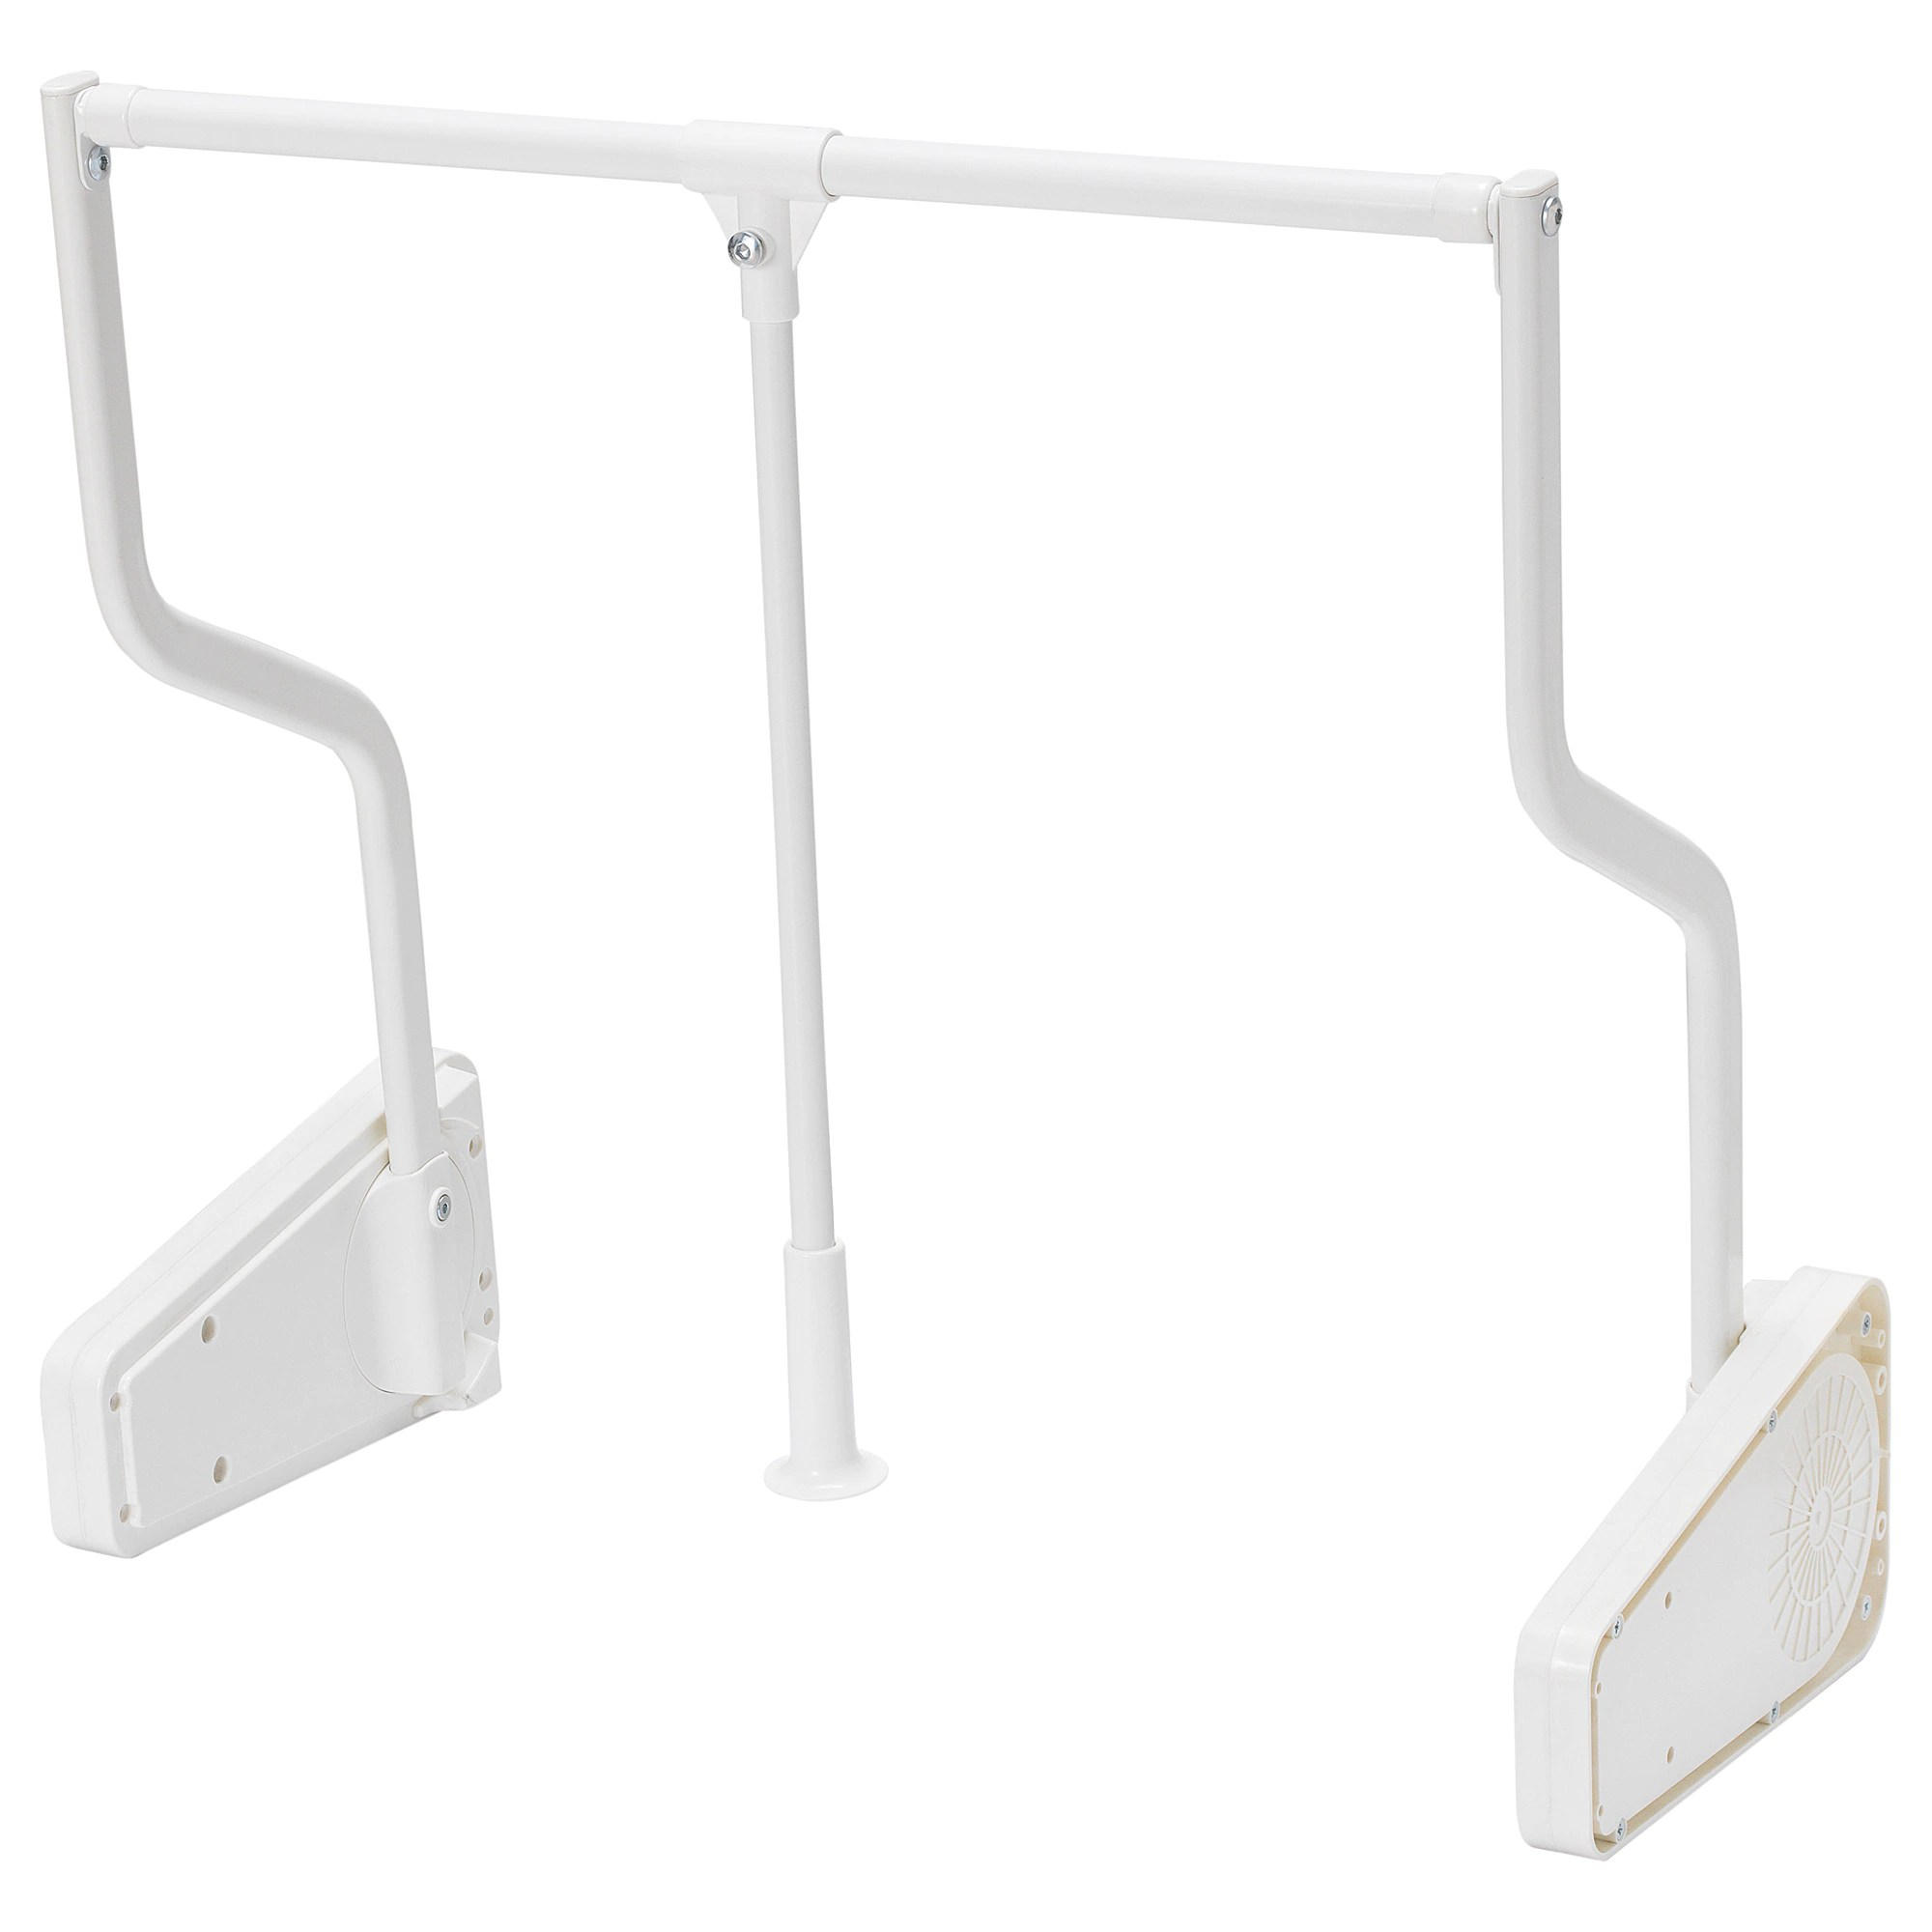 Penderie Plastique Ikea Tringle Habits Rabattable Ext Komplement Blanc